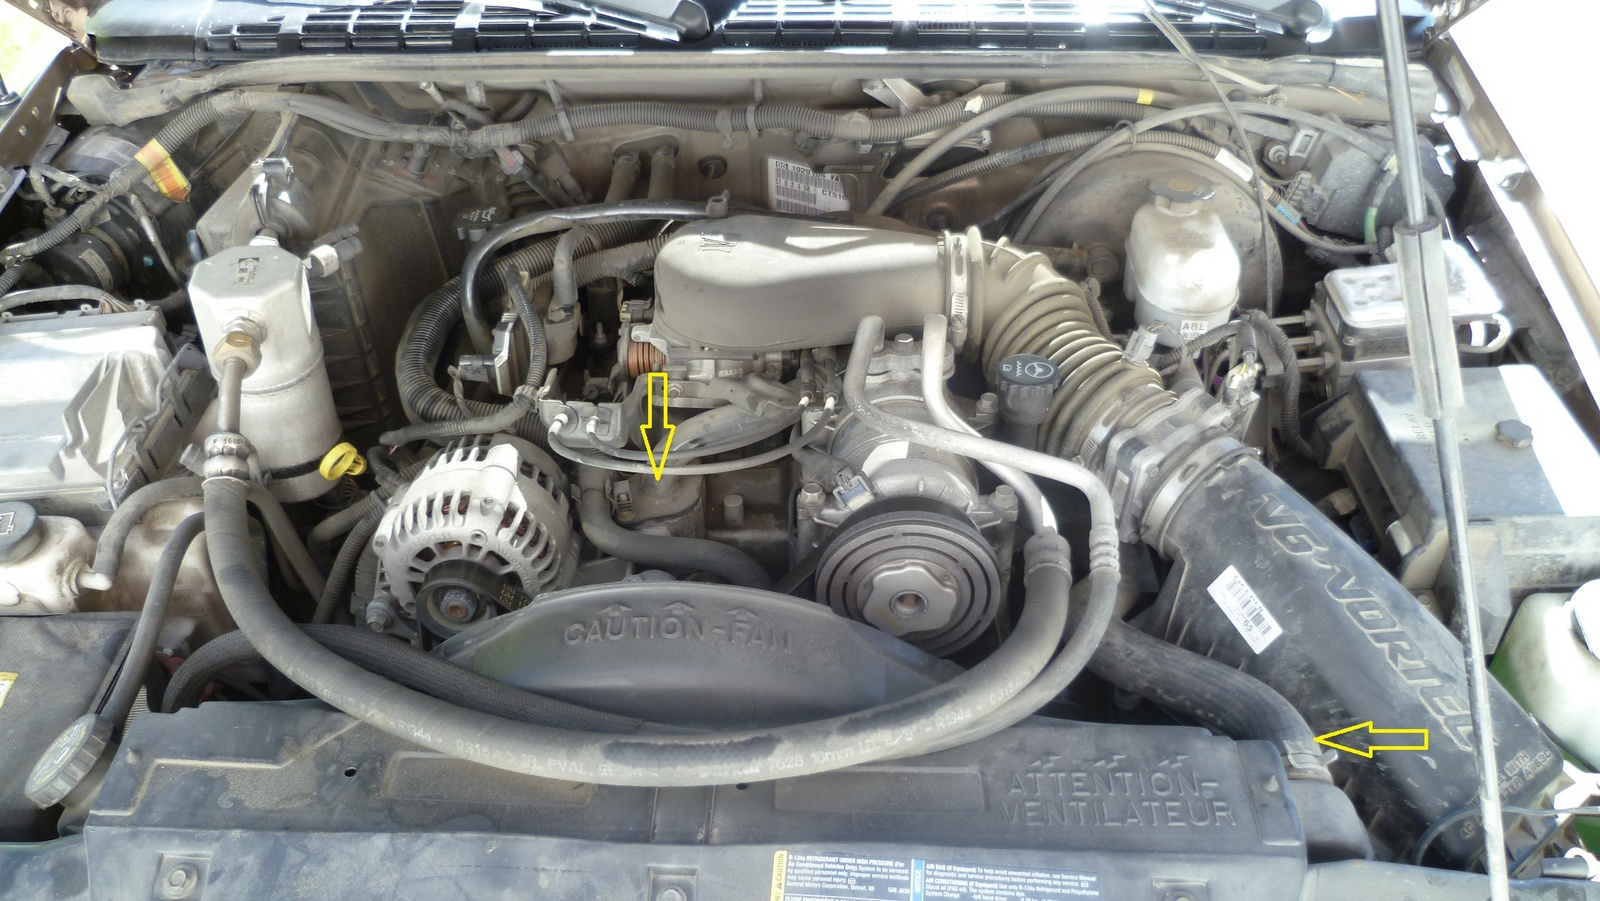 2003 Chevy S10 Vacuum Diagram Gm 1500 Gmc Sonoma Engine Wiring Free Image 2000